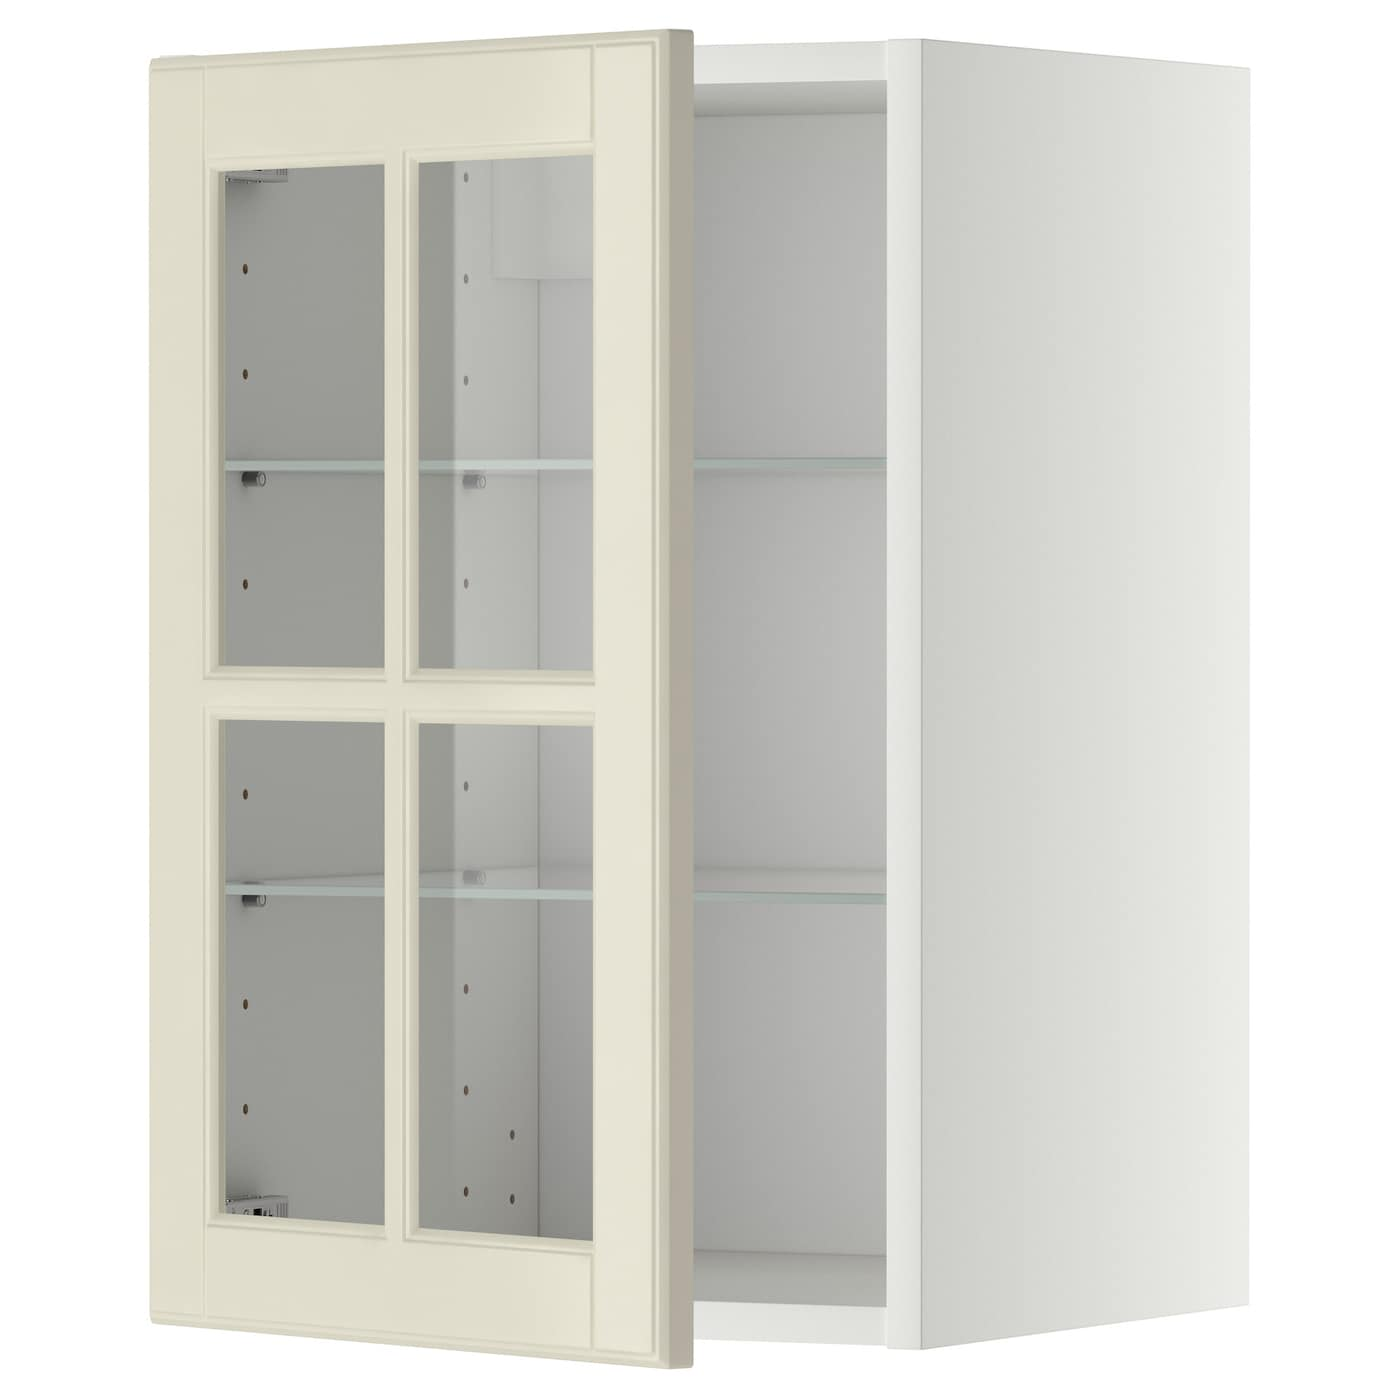 Wall Cabinet W Shelves Glass Door Metod White Bodbyn Off White